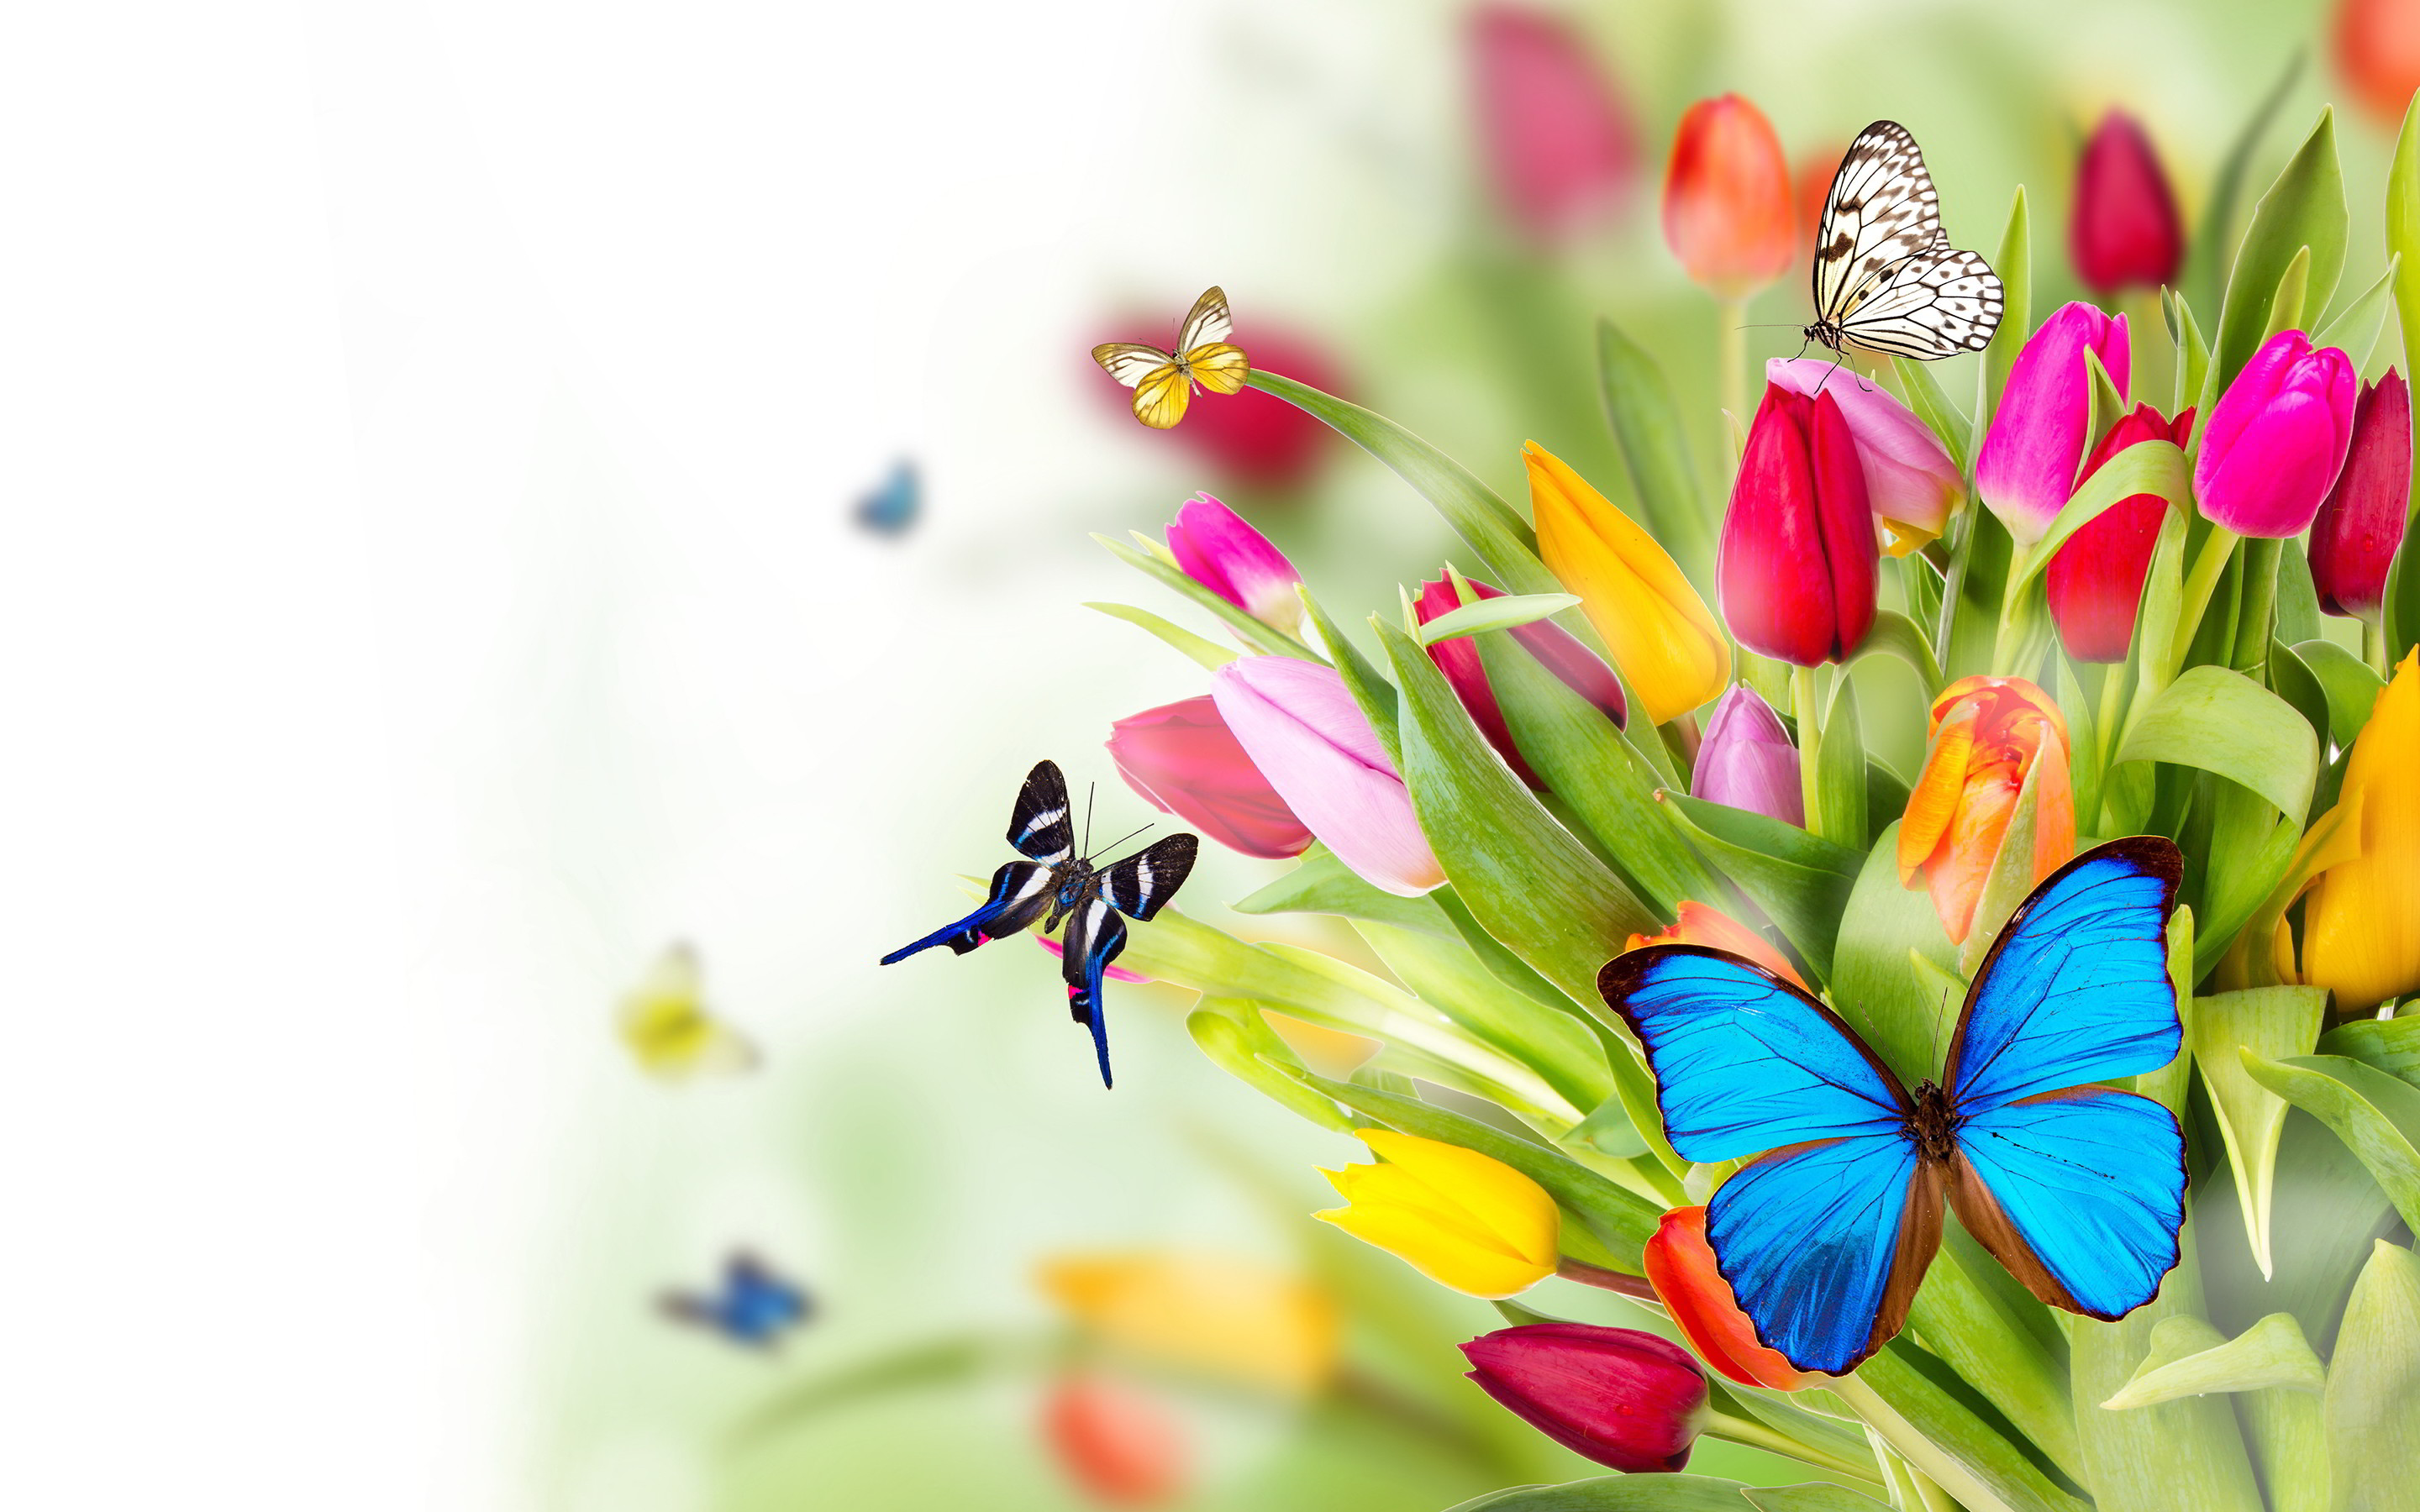 Top Beautiful Butterfly Pictures | Digiatto.com | HD Wallpaper and Download  Free Wallpaper